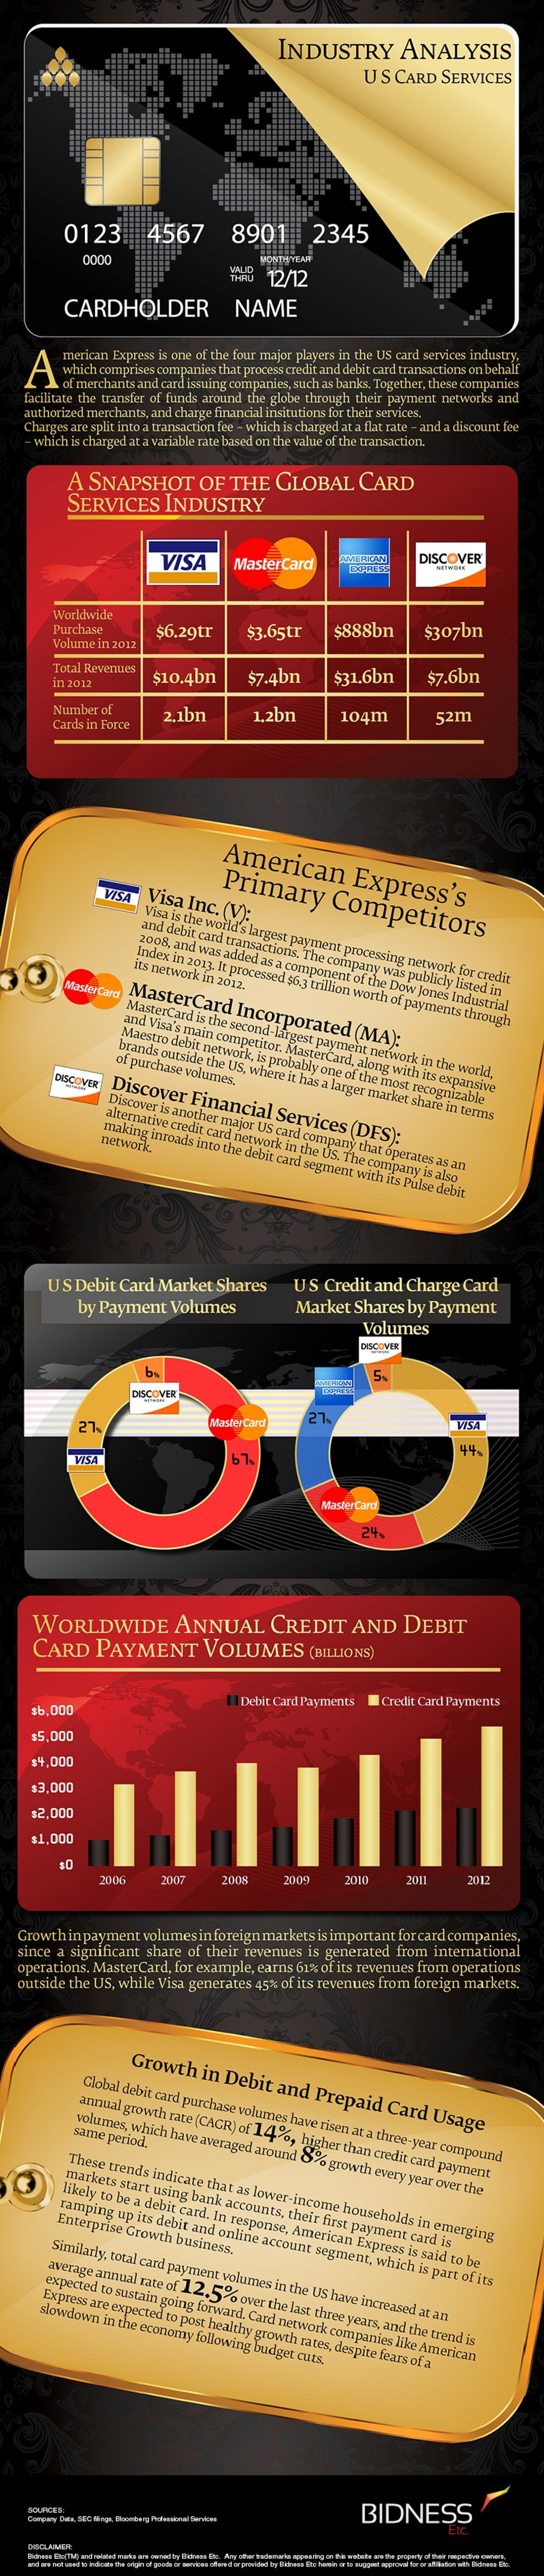 American Express (AXP) Industry Analysis Infographic